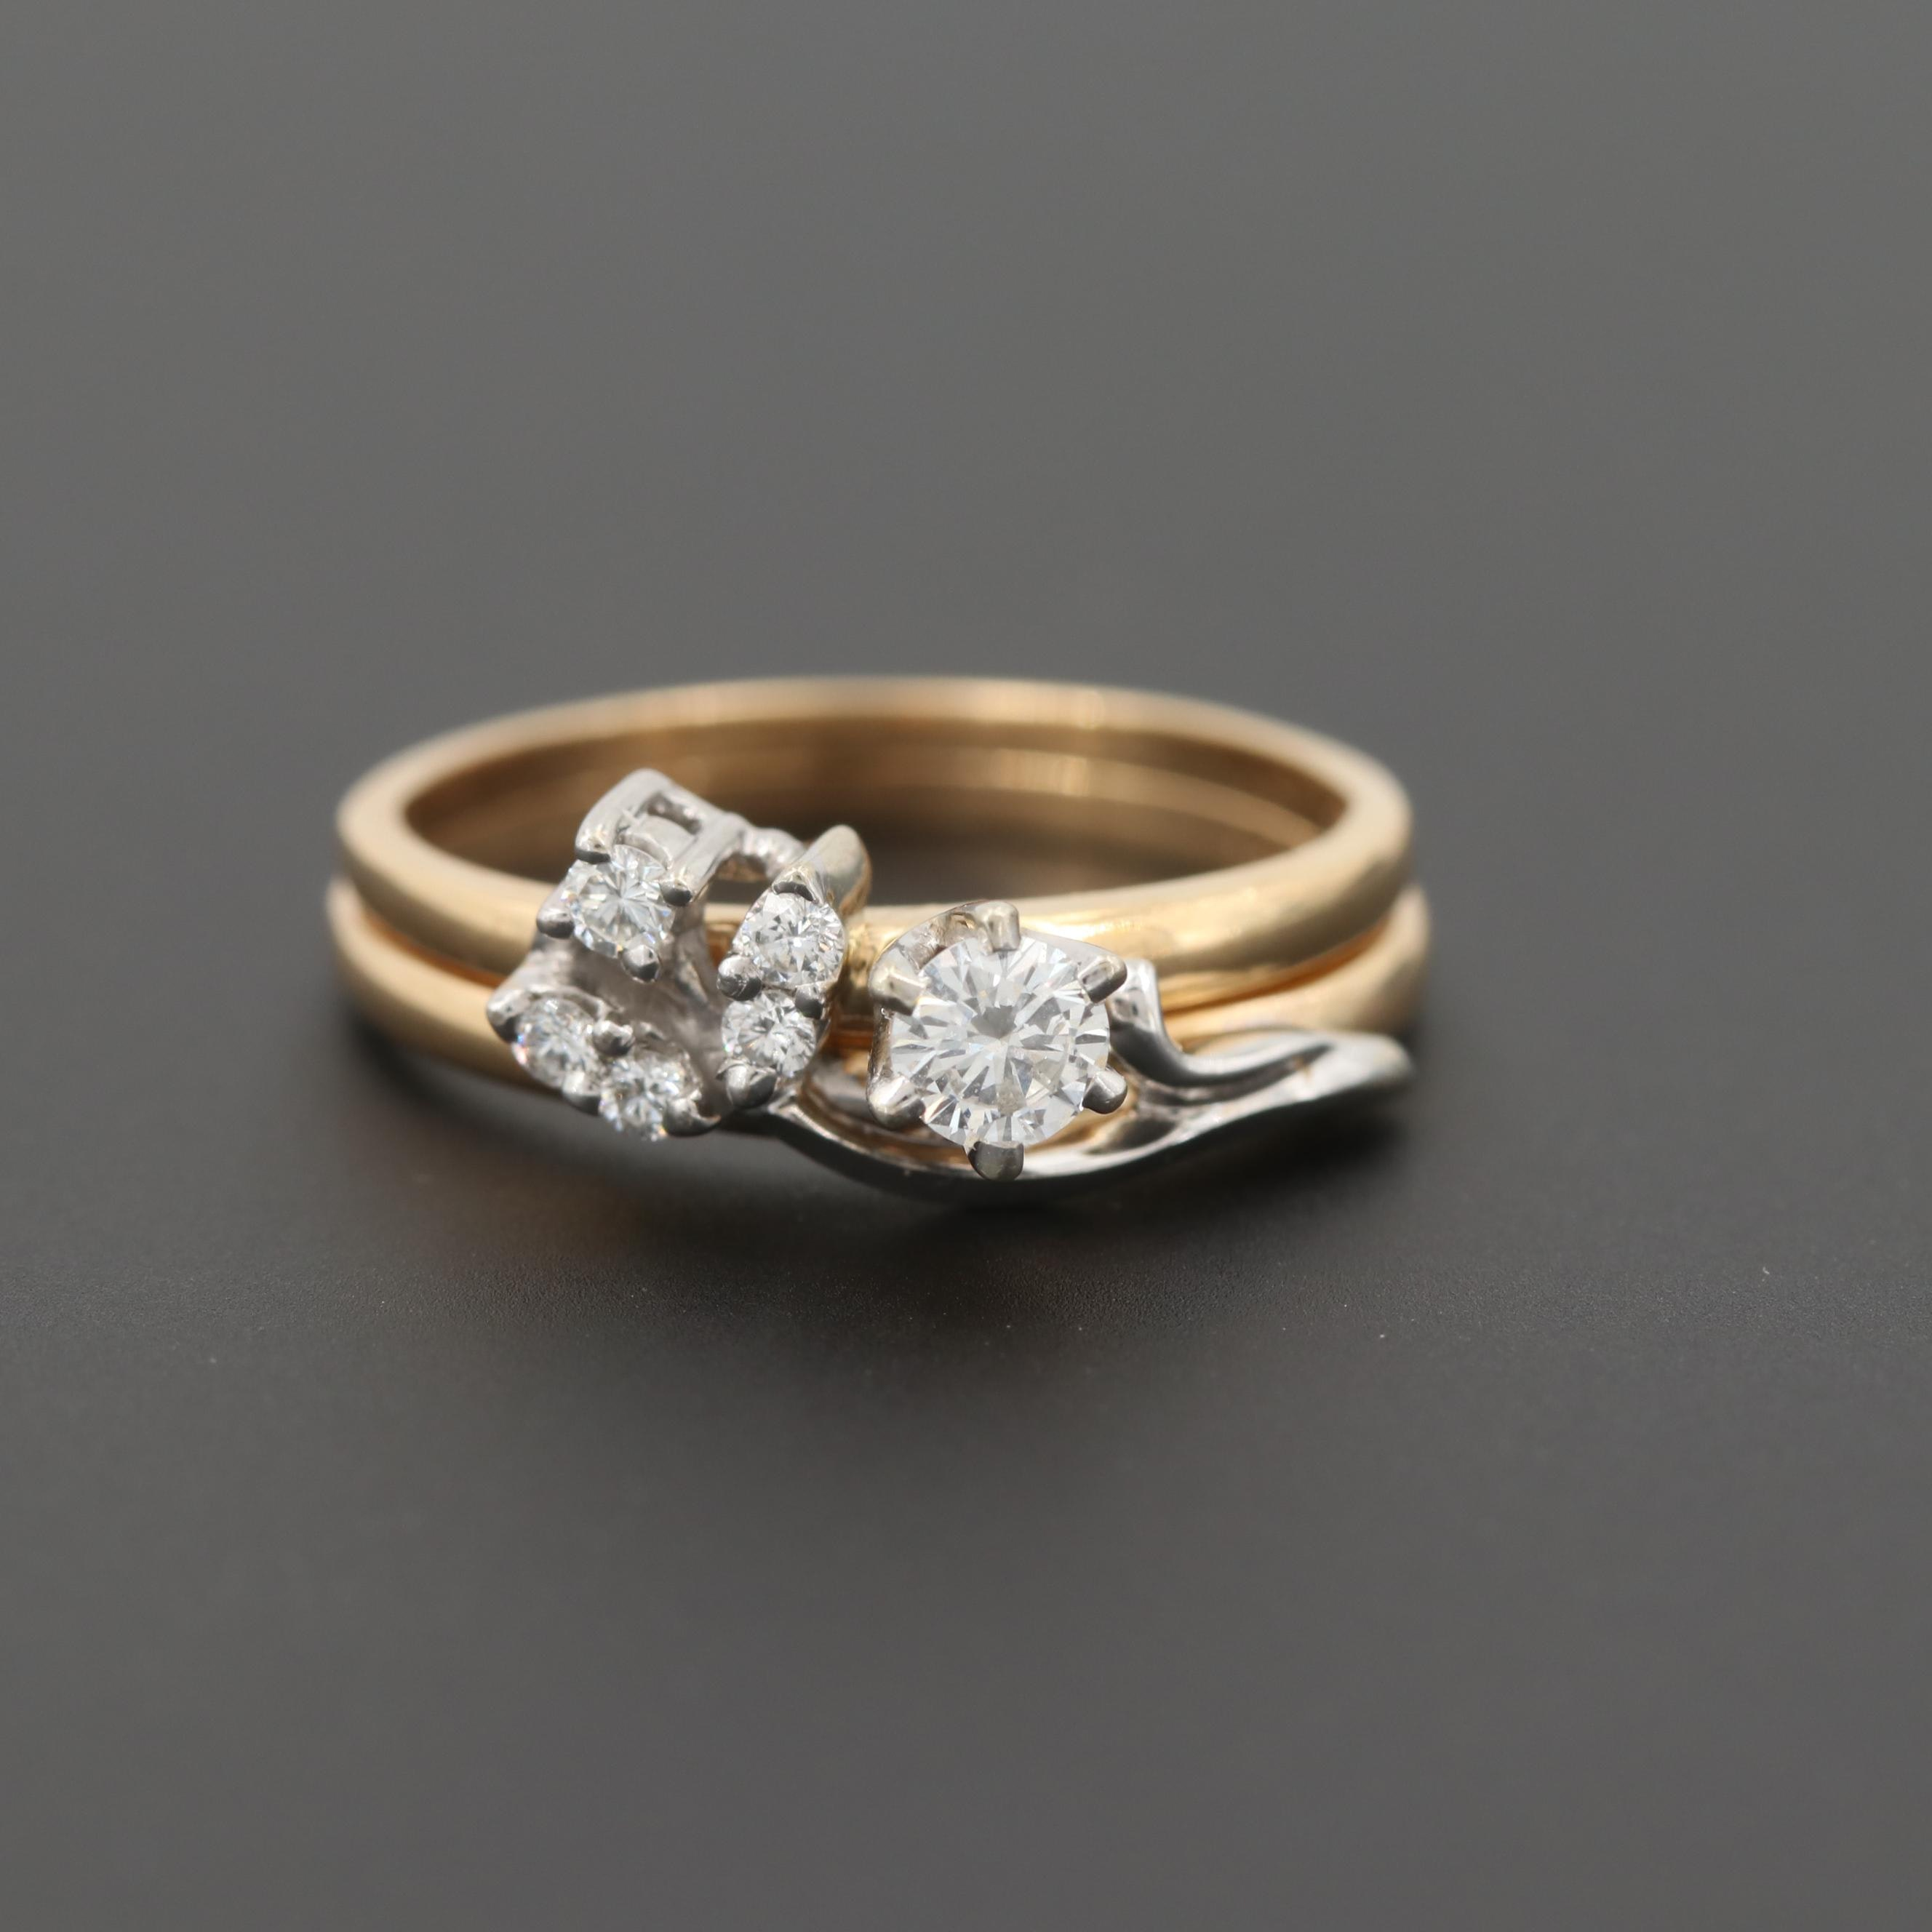 14K Yellow Gold Diamond Nesting Ring Set with White Gold Accents